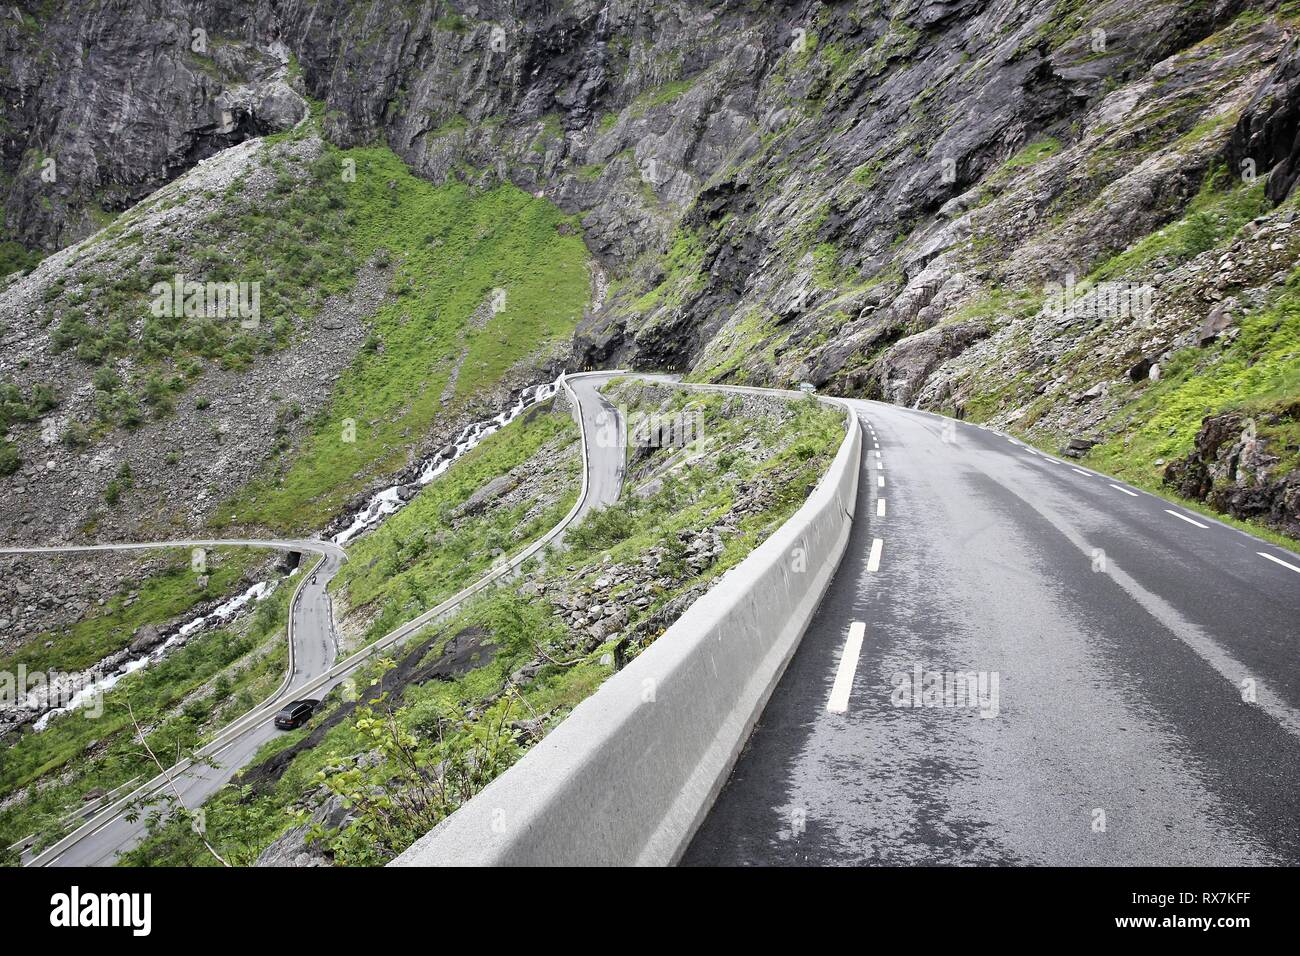 Troll Road, Norway - dangerous mountain road with hairpin curves. - Stock Image